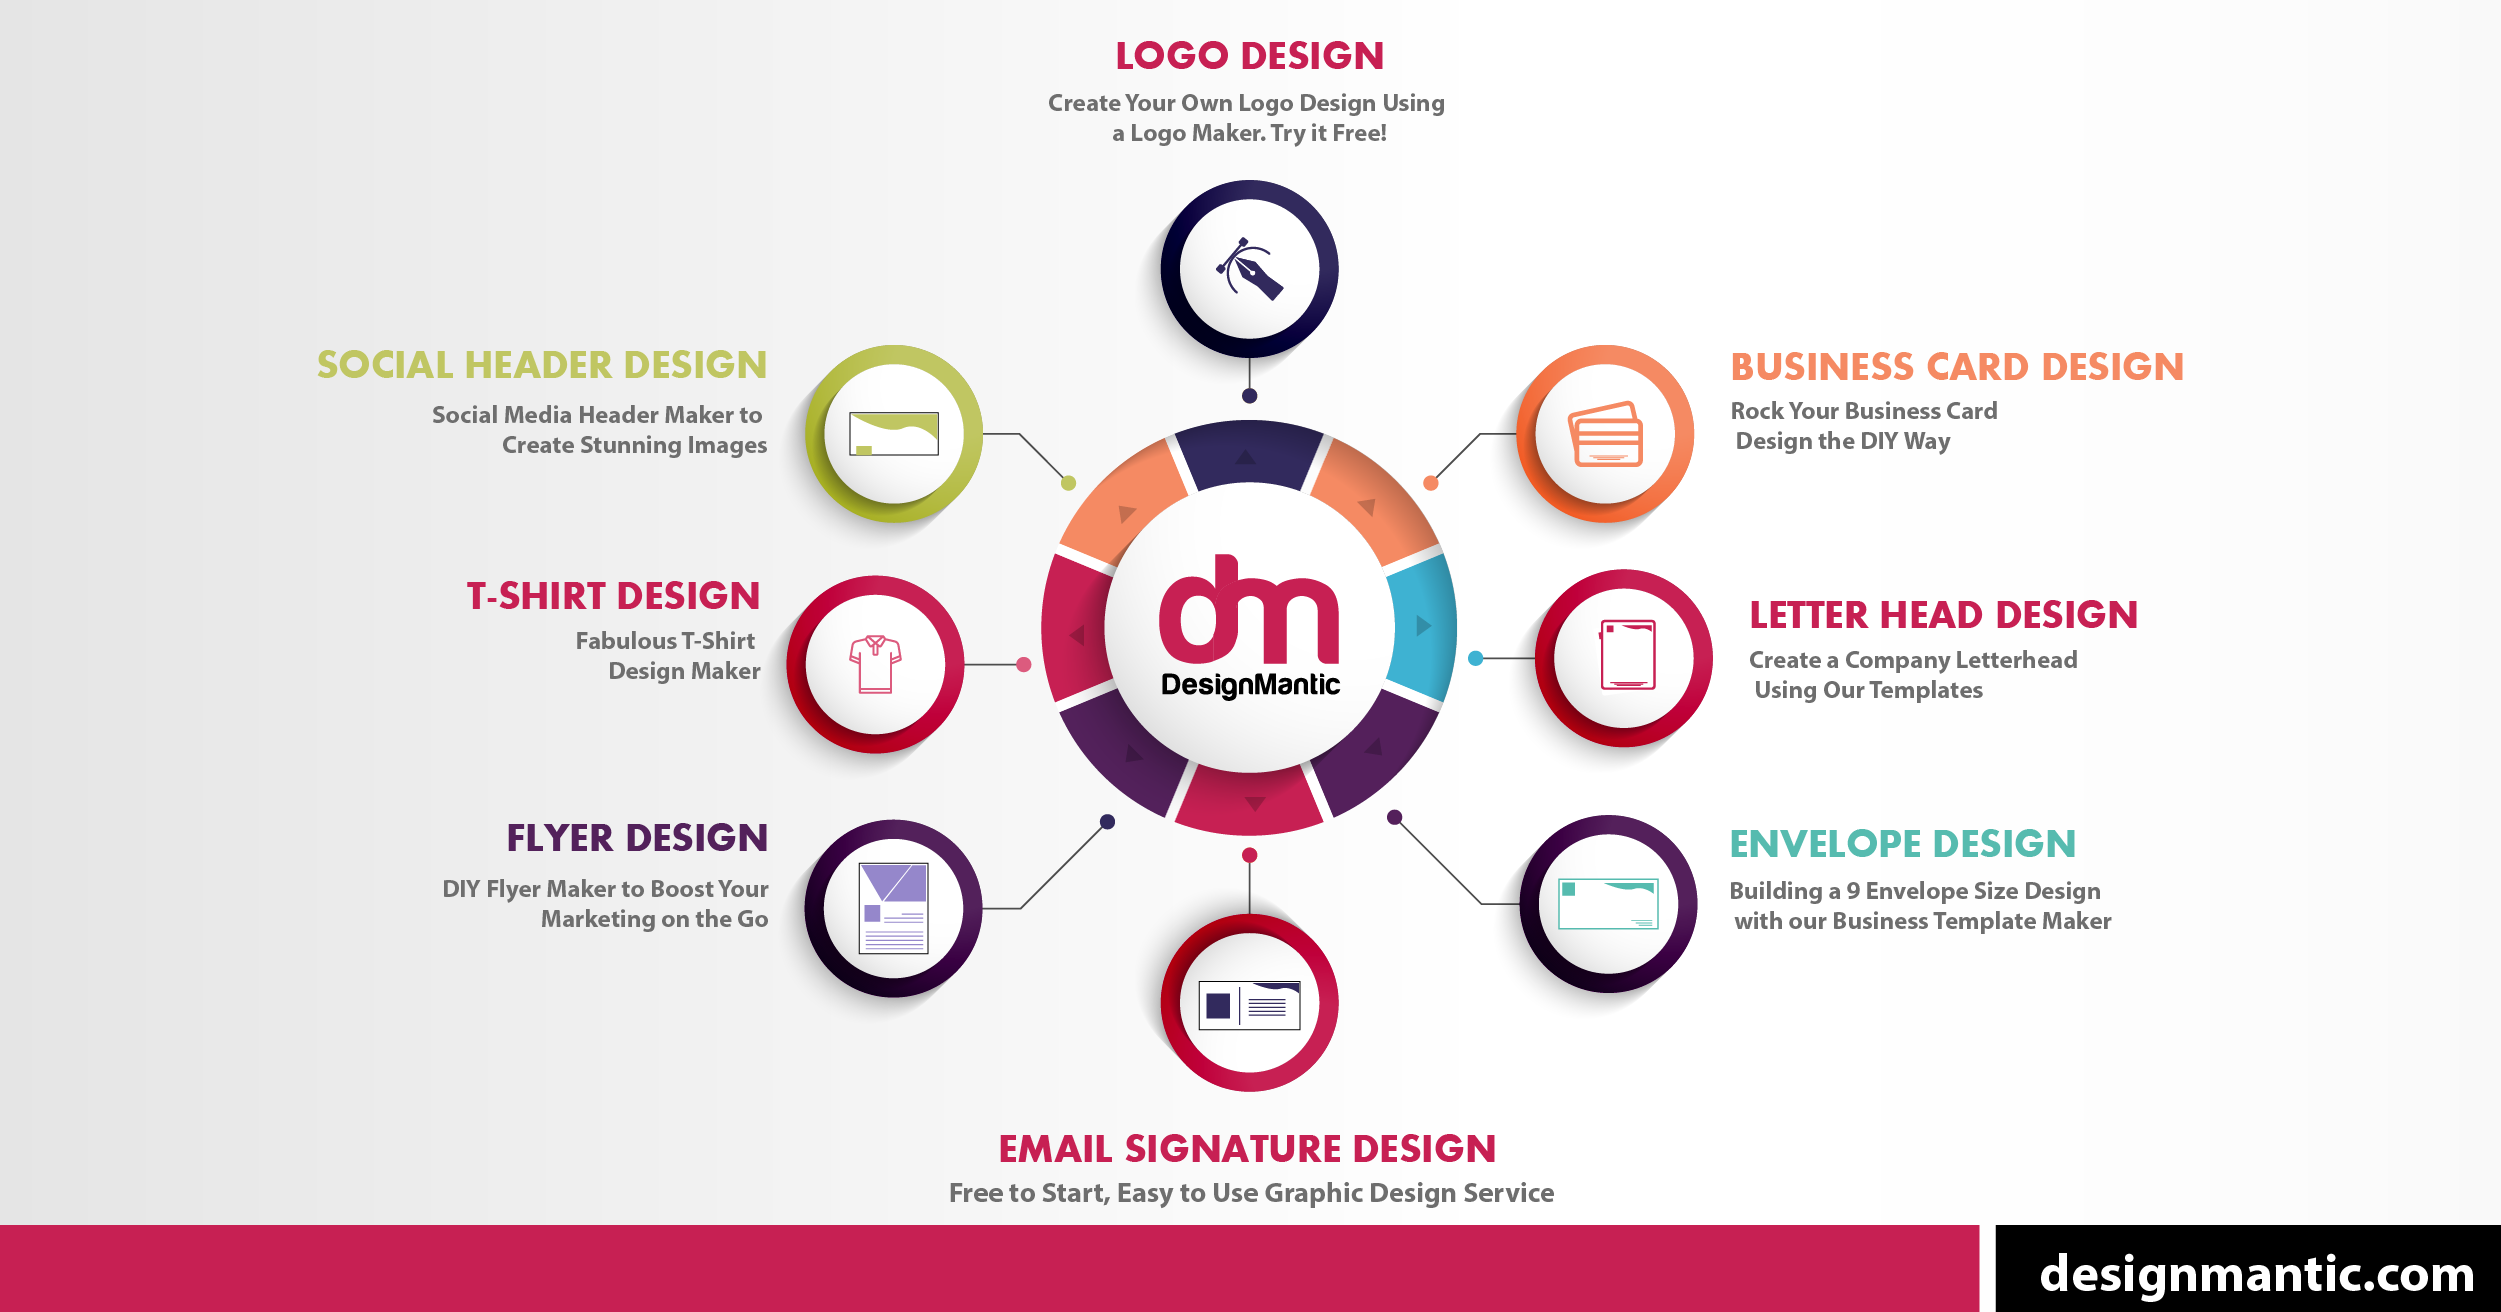 Logo Design Using Ai Logo Maker Tool Designmantic The Design Shop